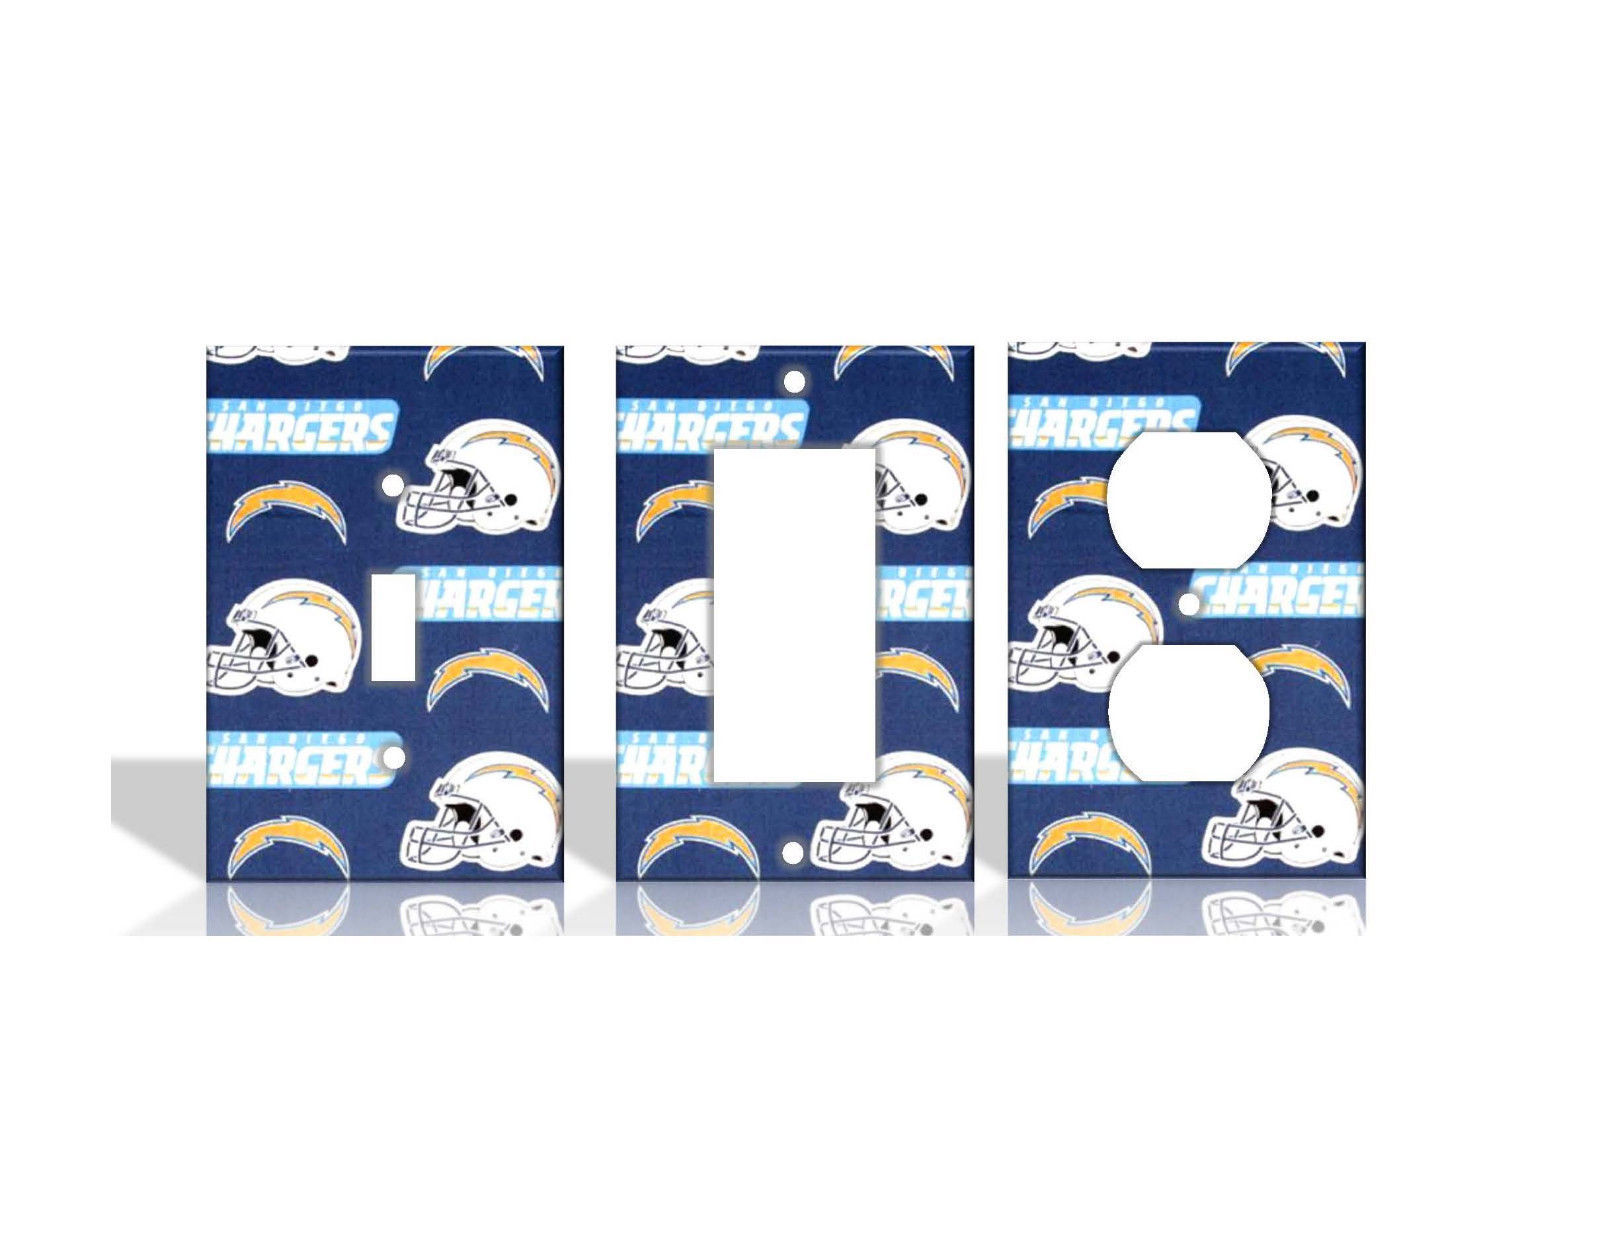 San Diego Chargers 2 Blue Light Switch Covers Football